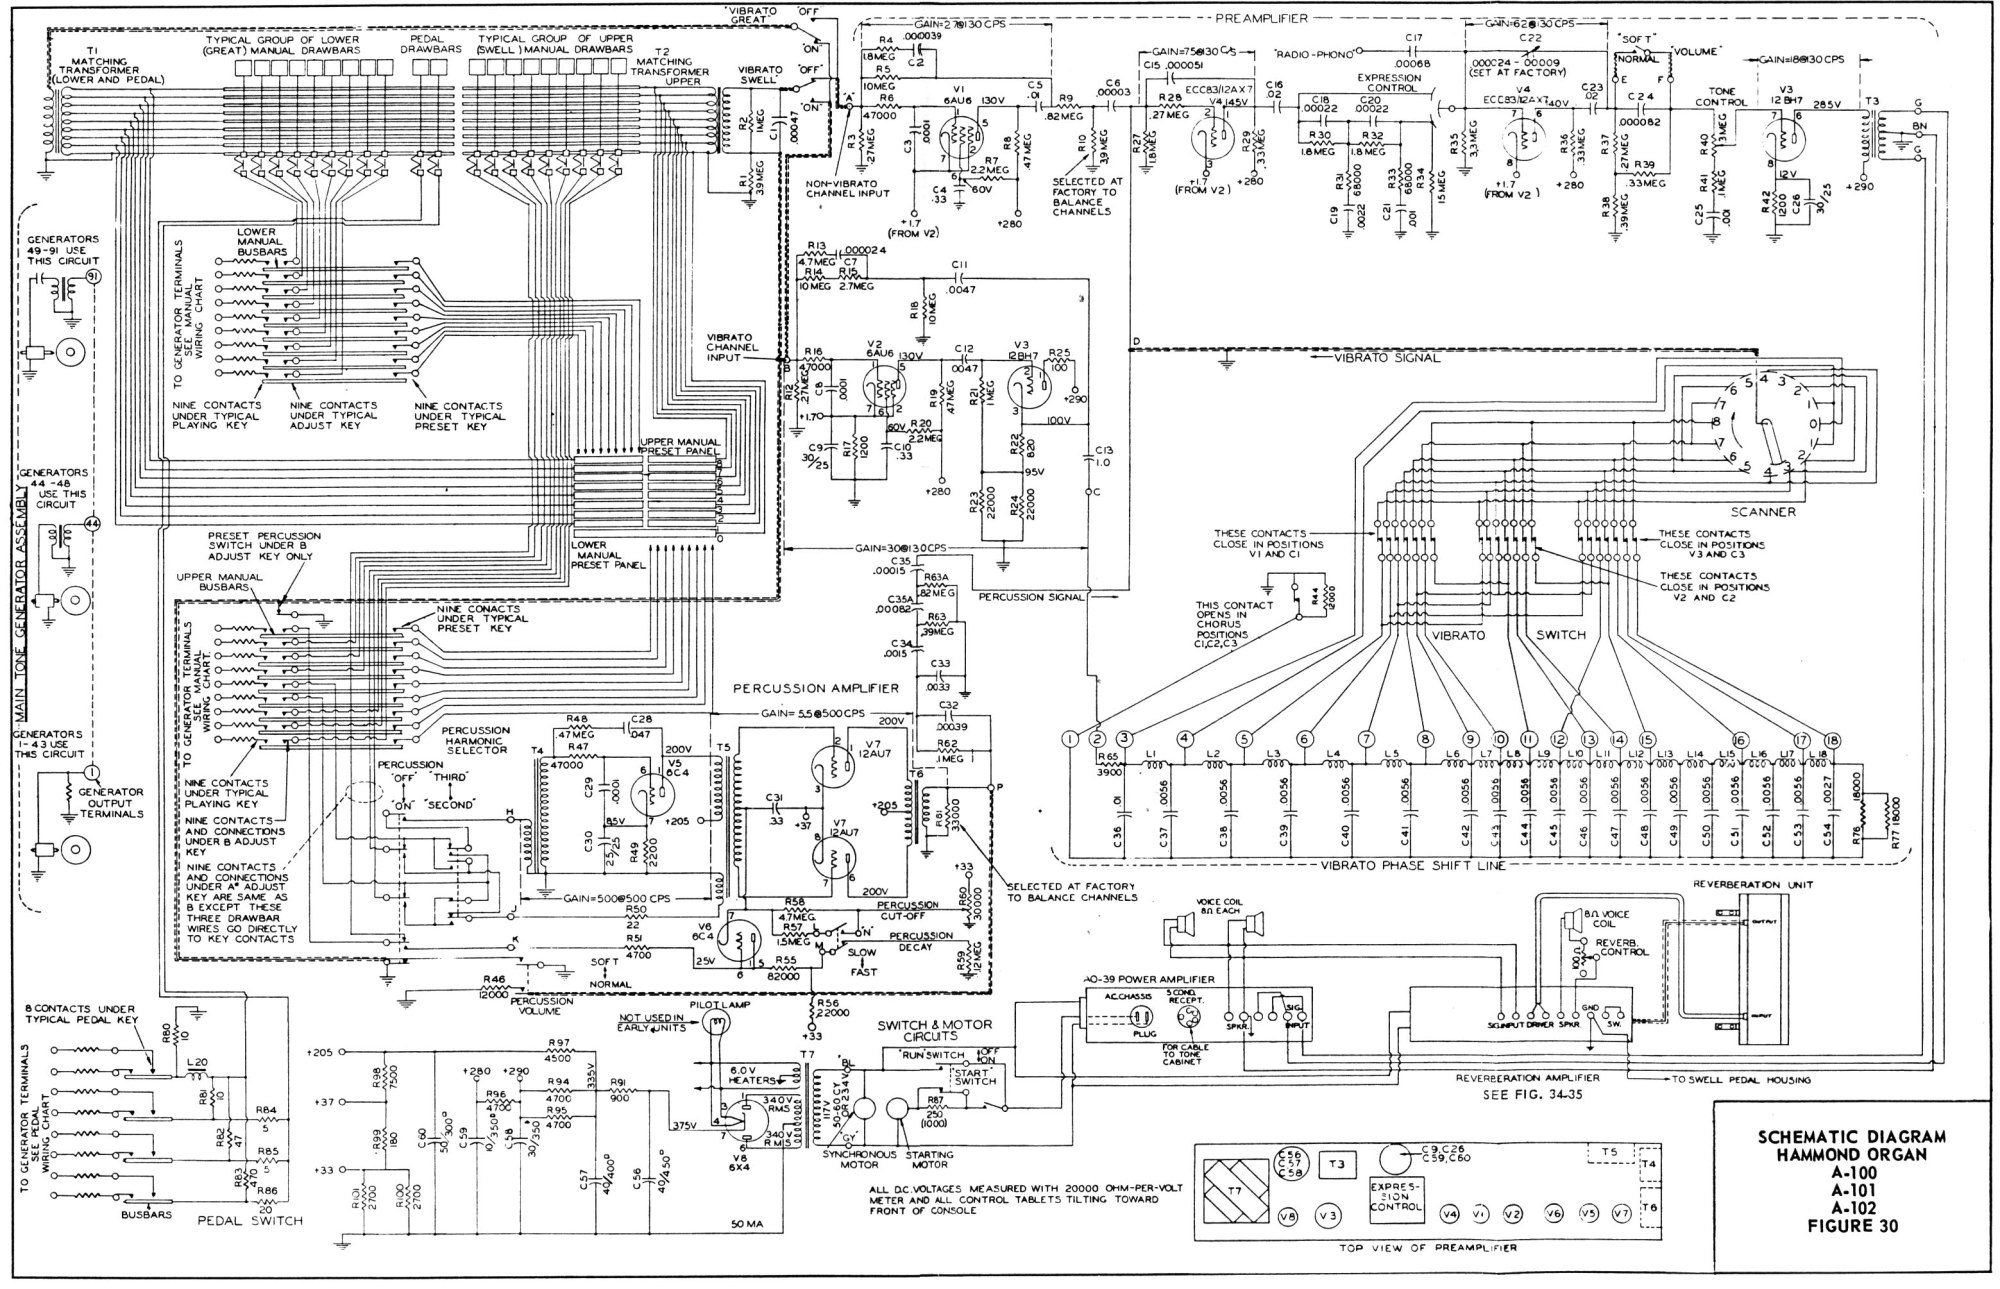 hight resolution of schematic 1 figure 30 hammond organ models a 100 a 101 a 102 schematic